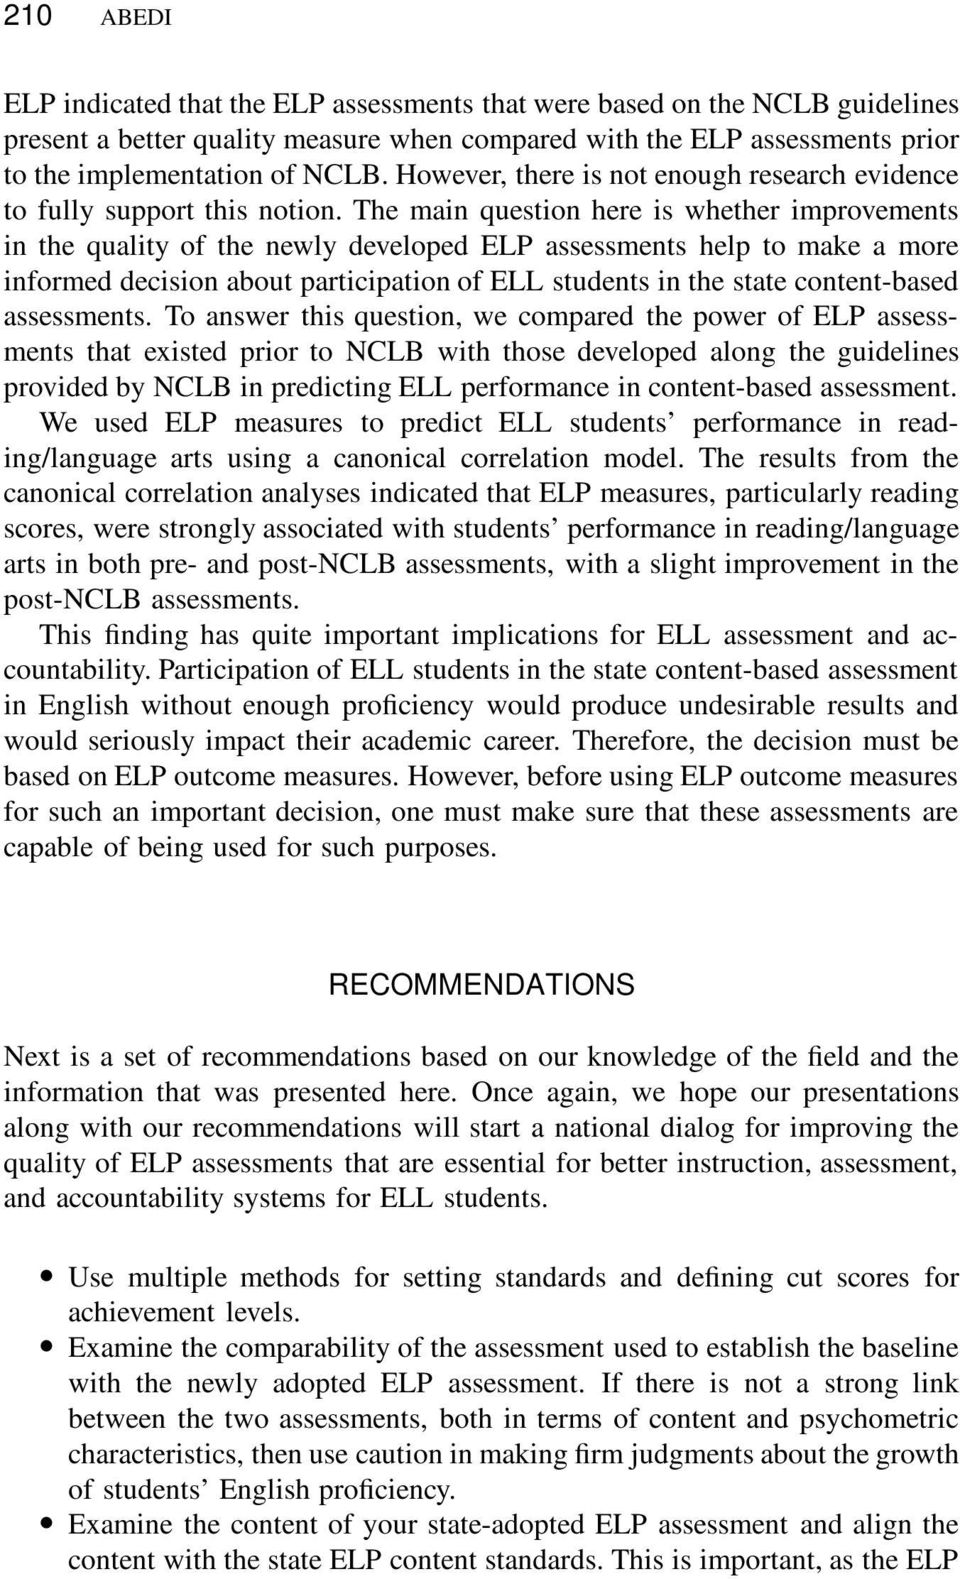 The main question here is whether improvements in the quality of the newly developed ELP assessments help to make a more informed decision about participation of ELL students in the state